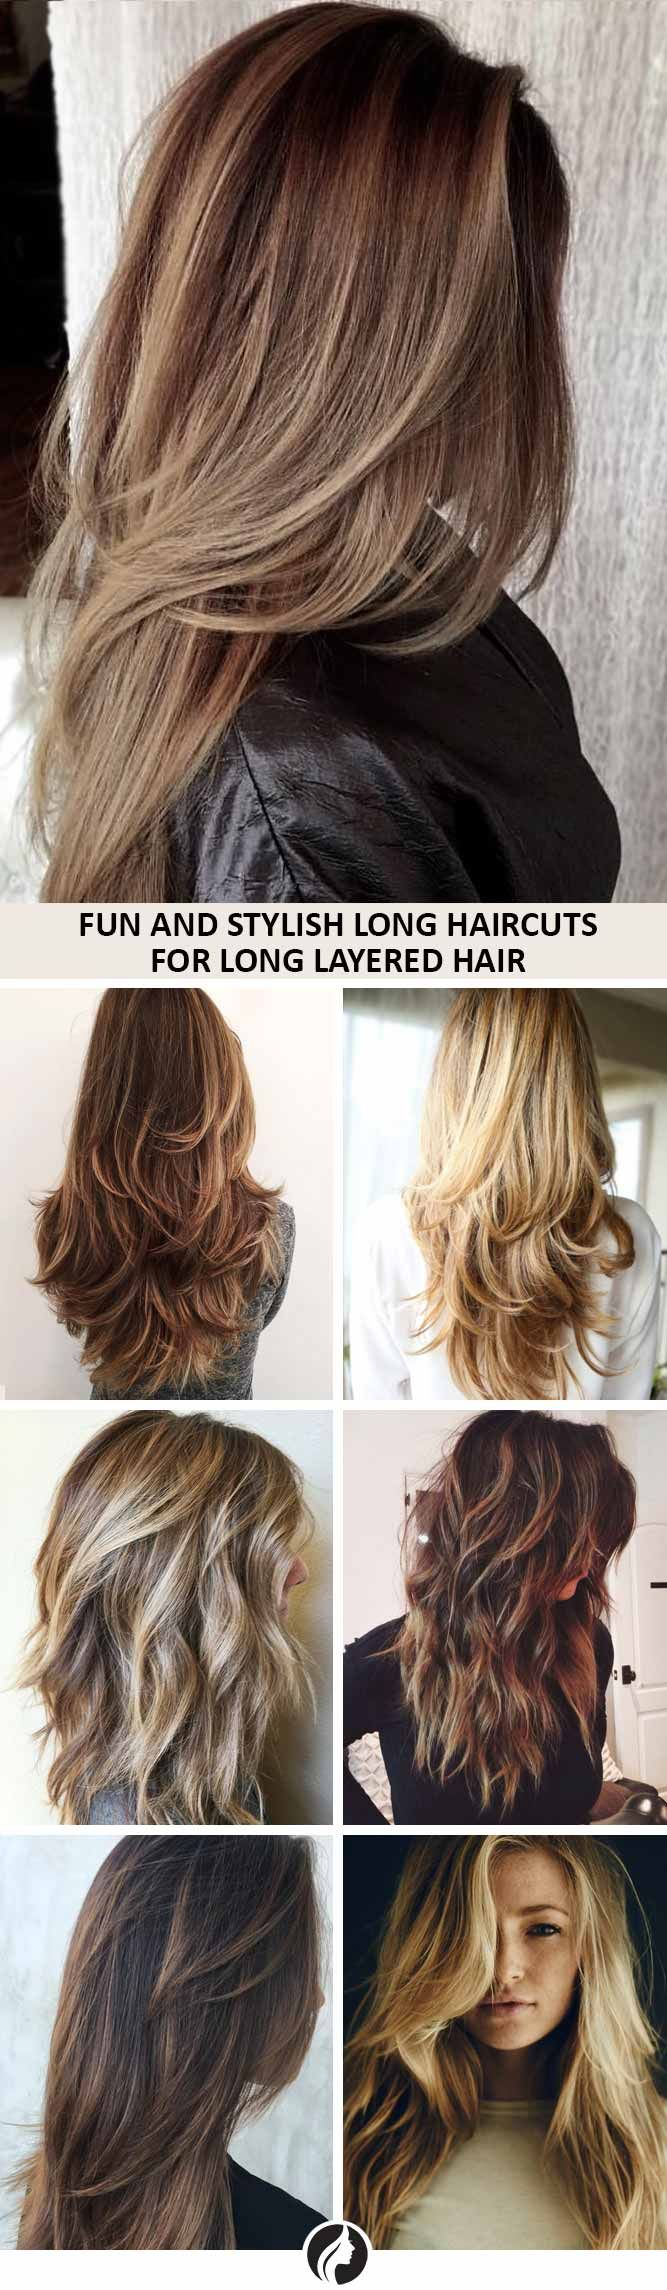 Best Hairstyles Haircuts For Women In 2017 2018 Fun And